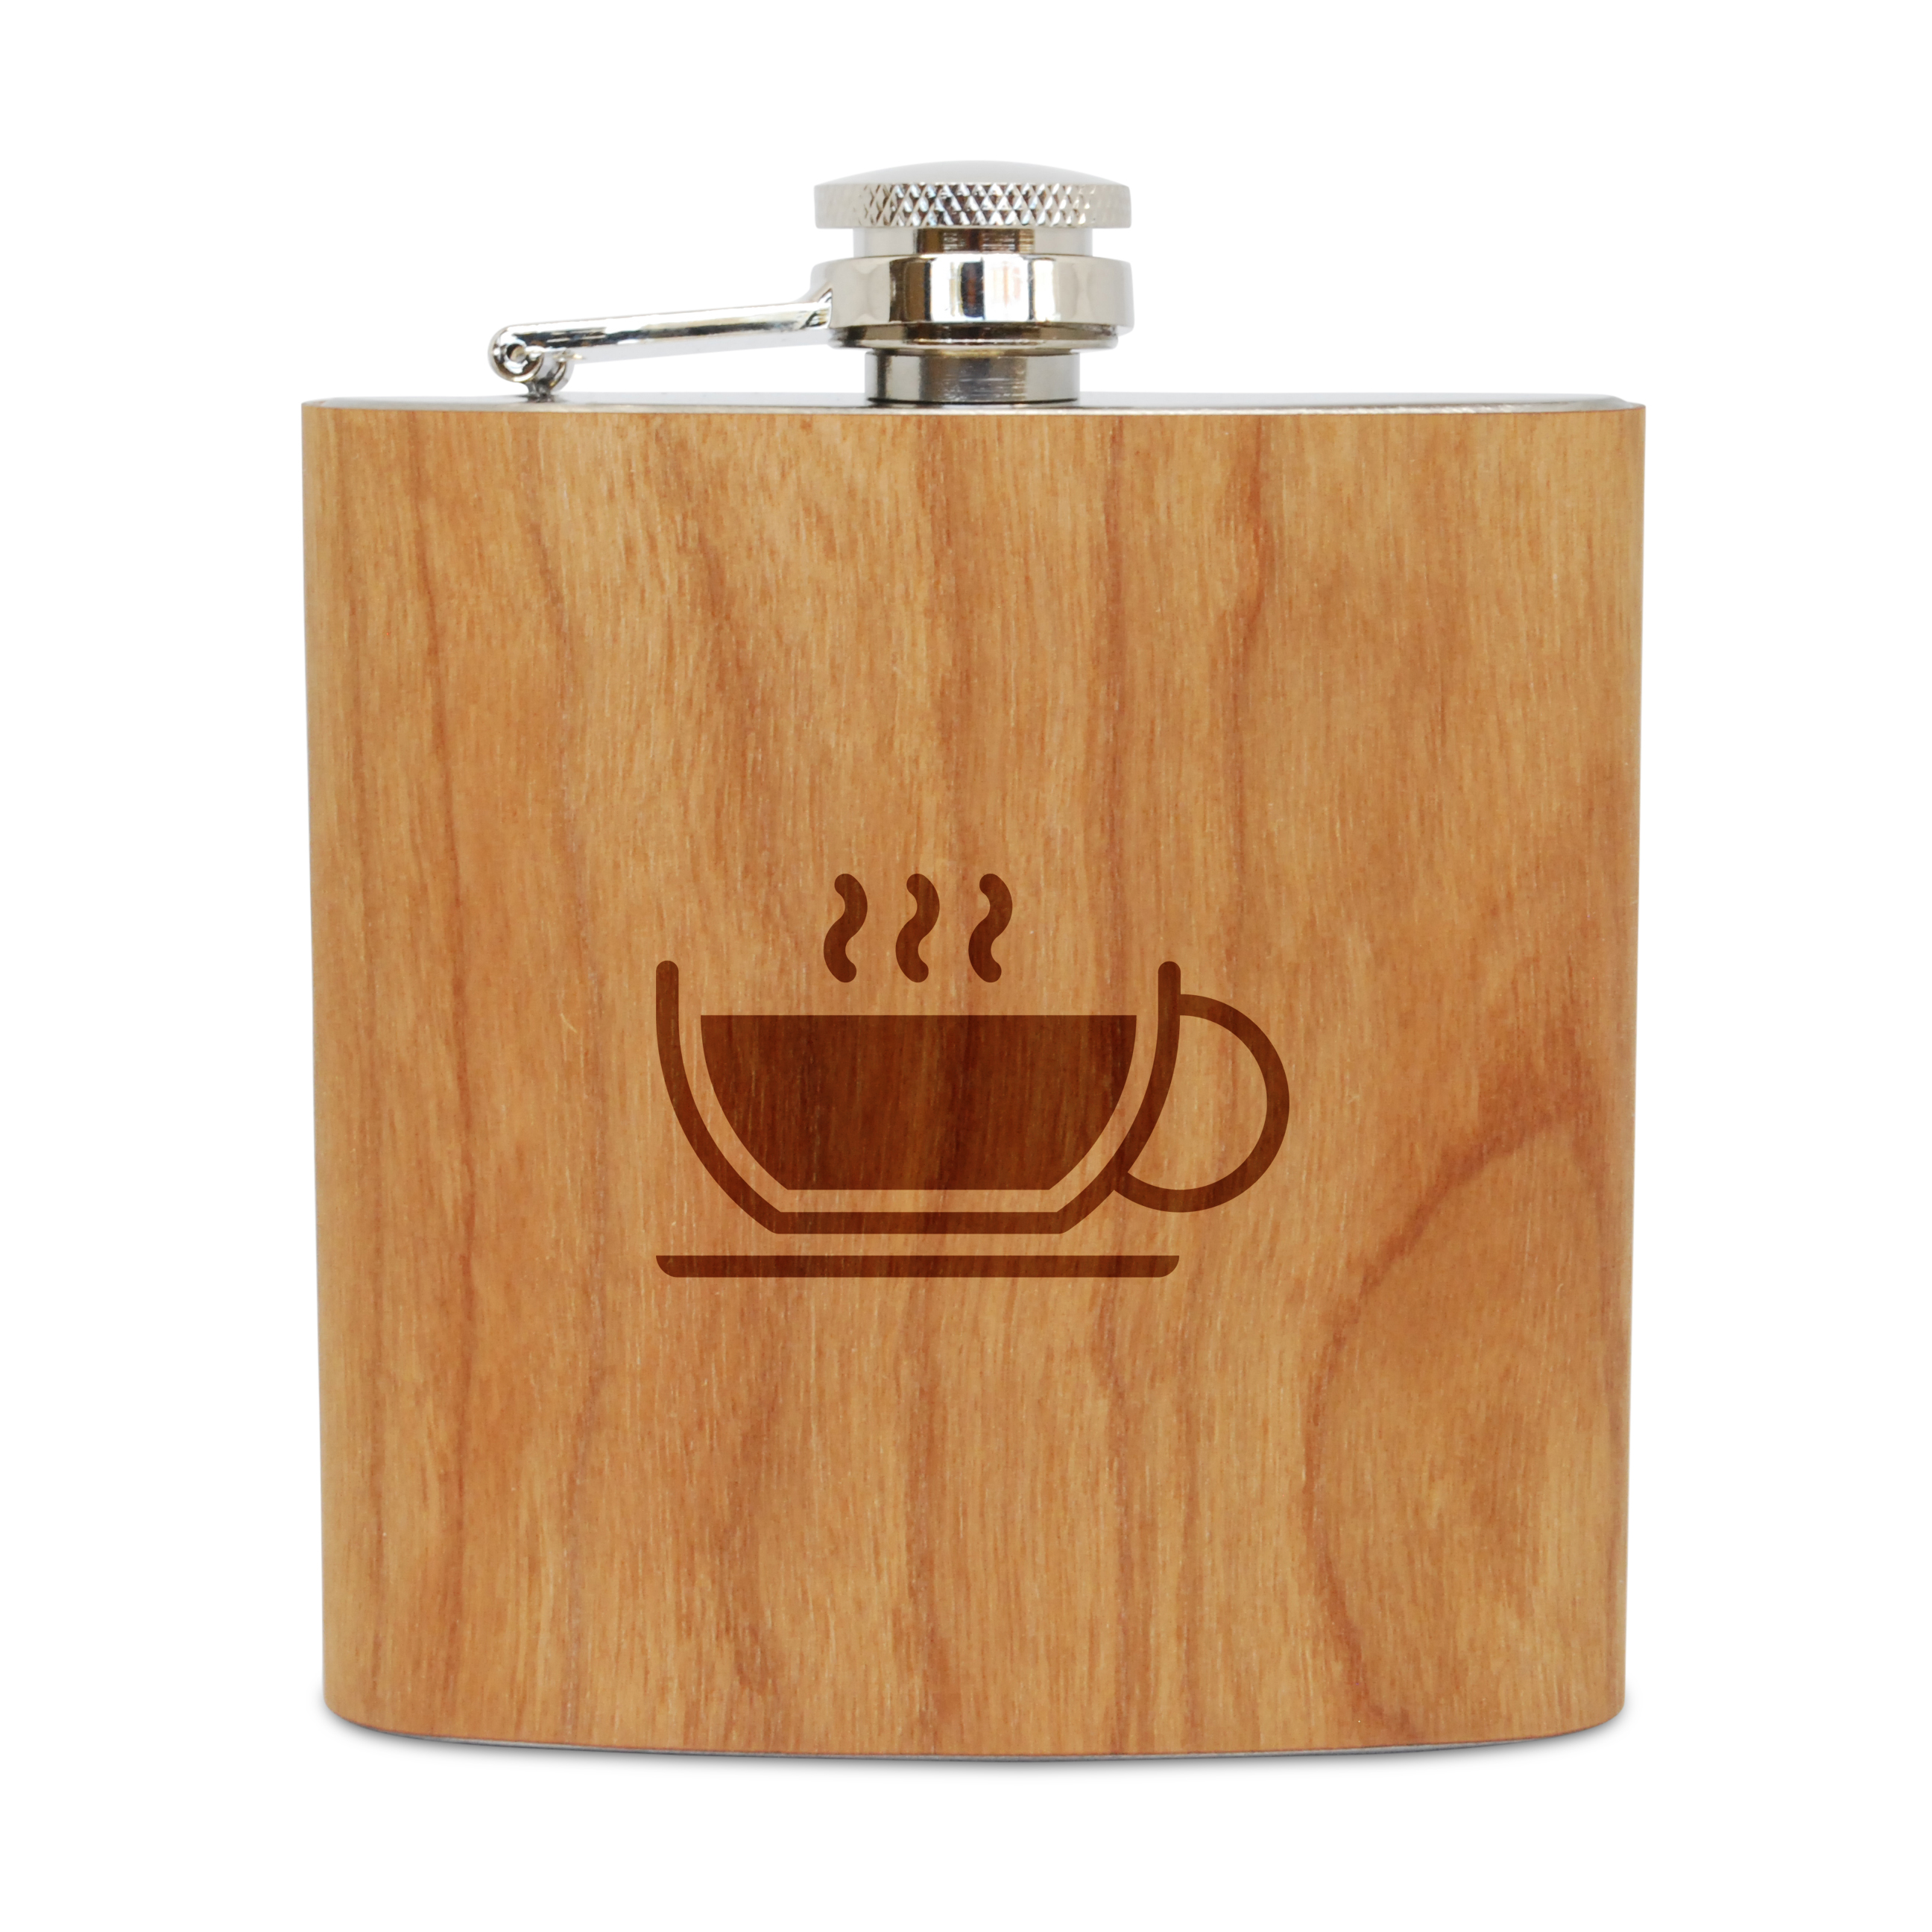 Latte Cup 6 Oz Wooden Flask (Cherry), Stainless Steel Body, Handmade In Usa